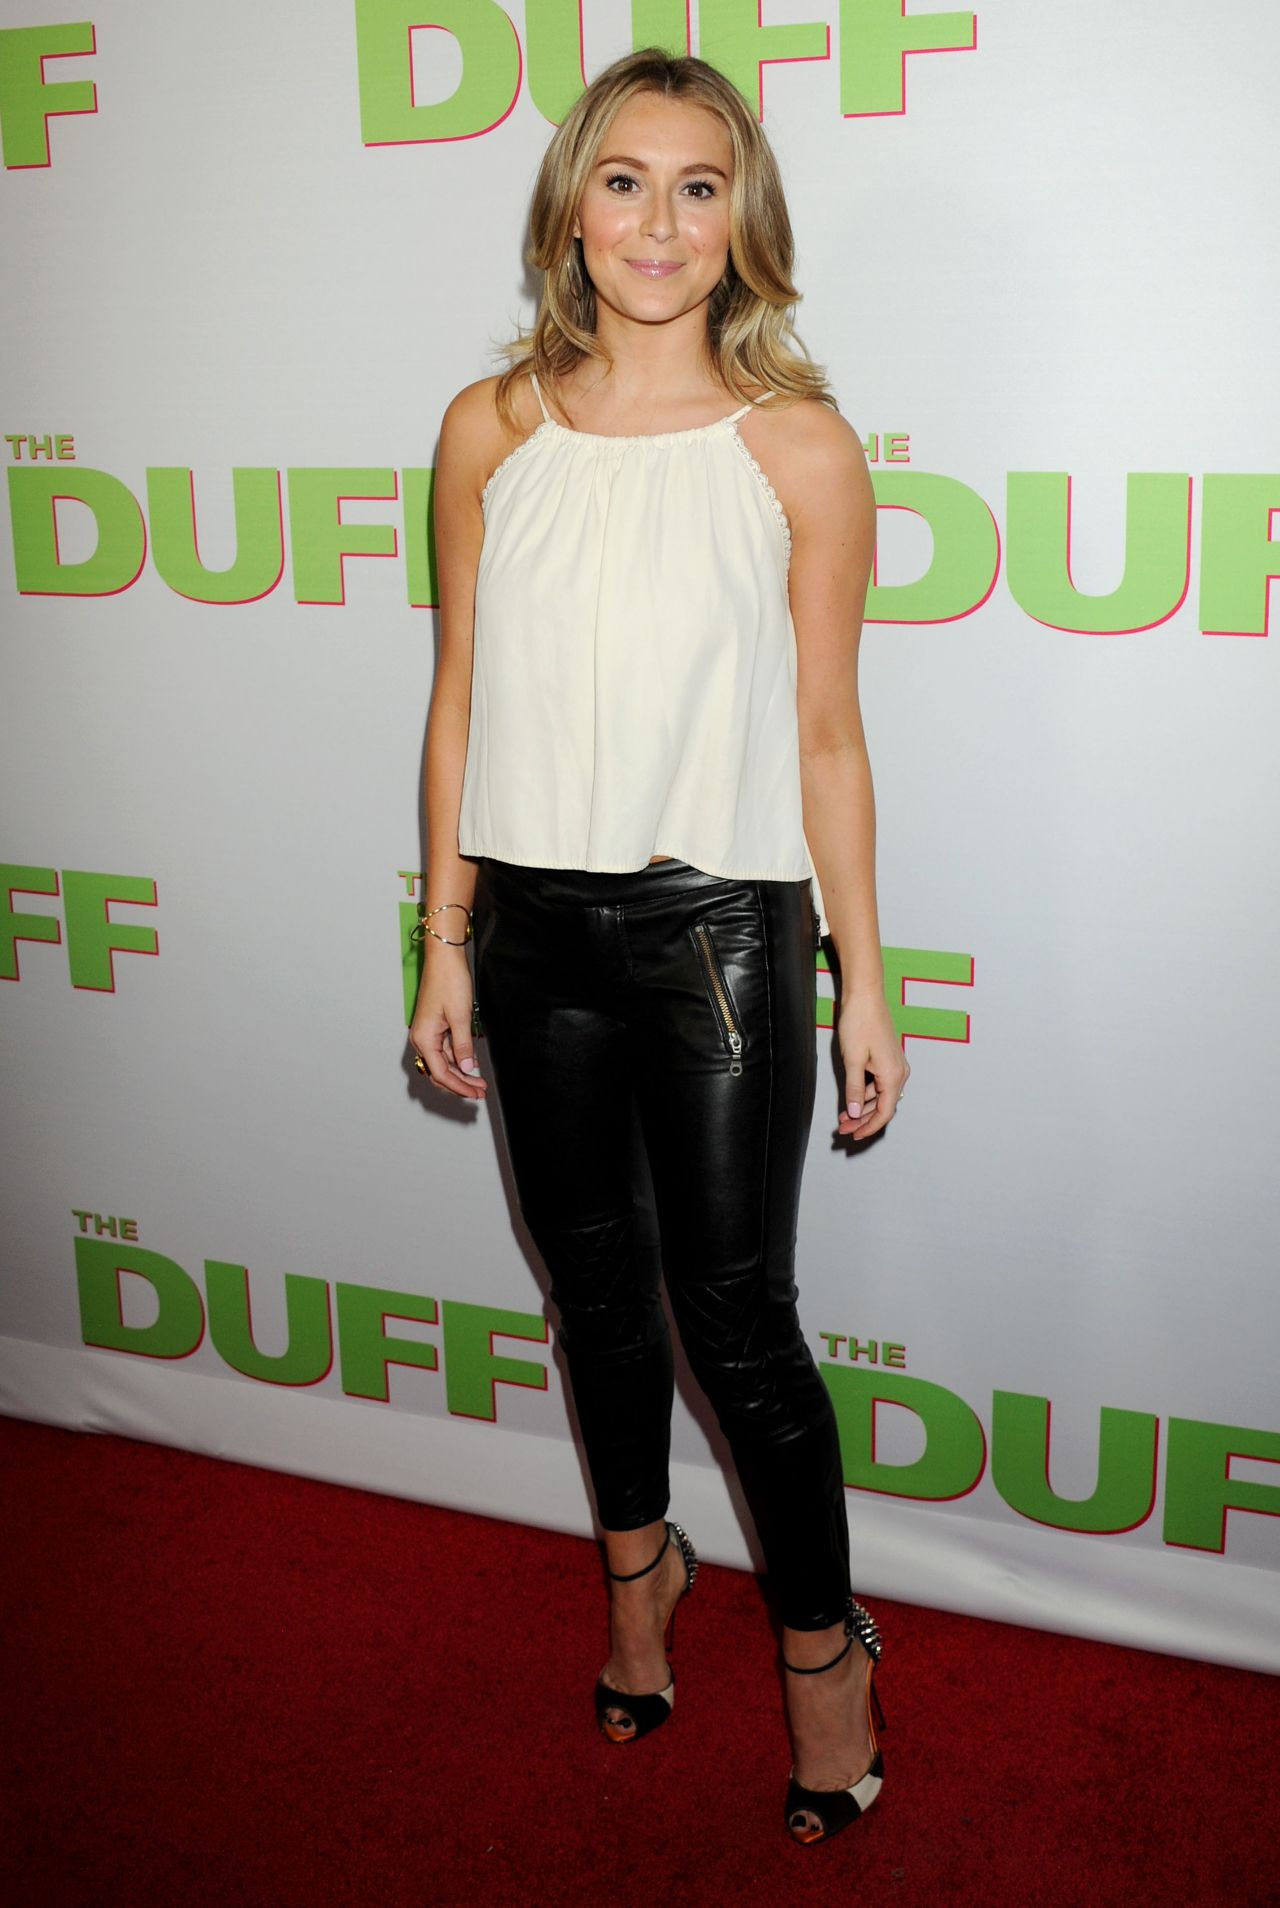 Alexa Vega The Duff Premiere In Hollywood